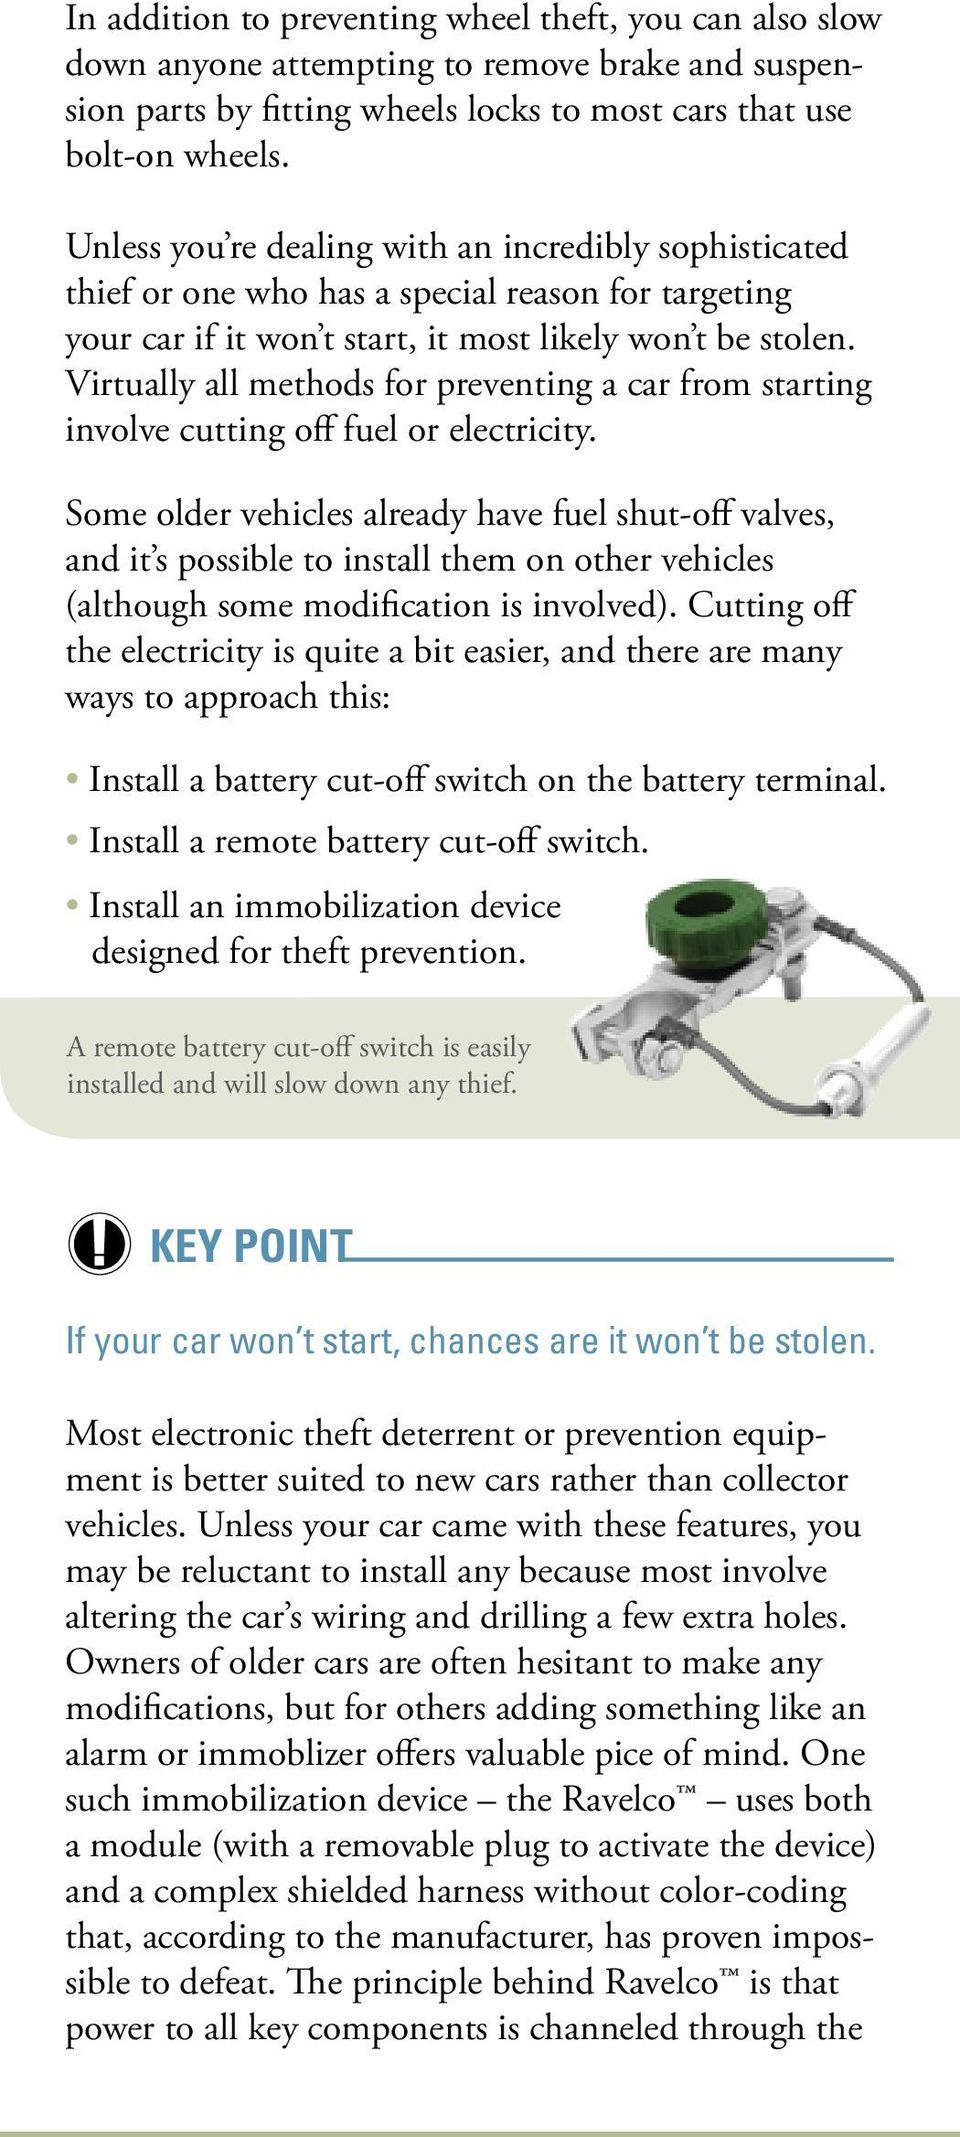 Virtually all methods for preventing a car from starting involve cutting off fuel or electricity.